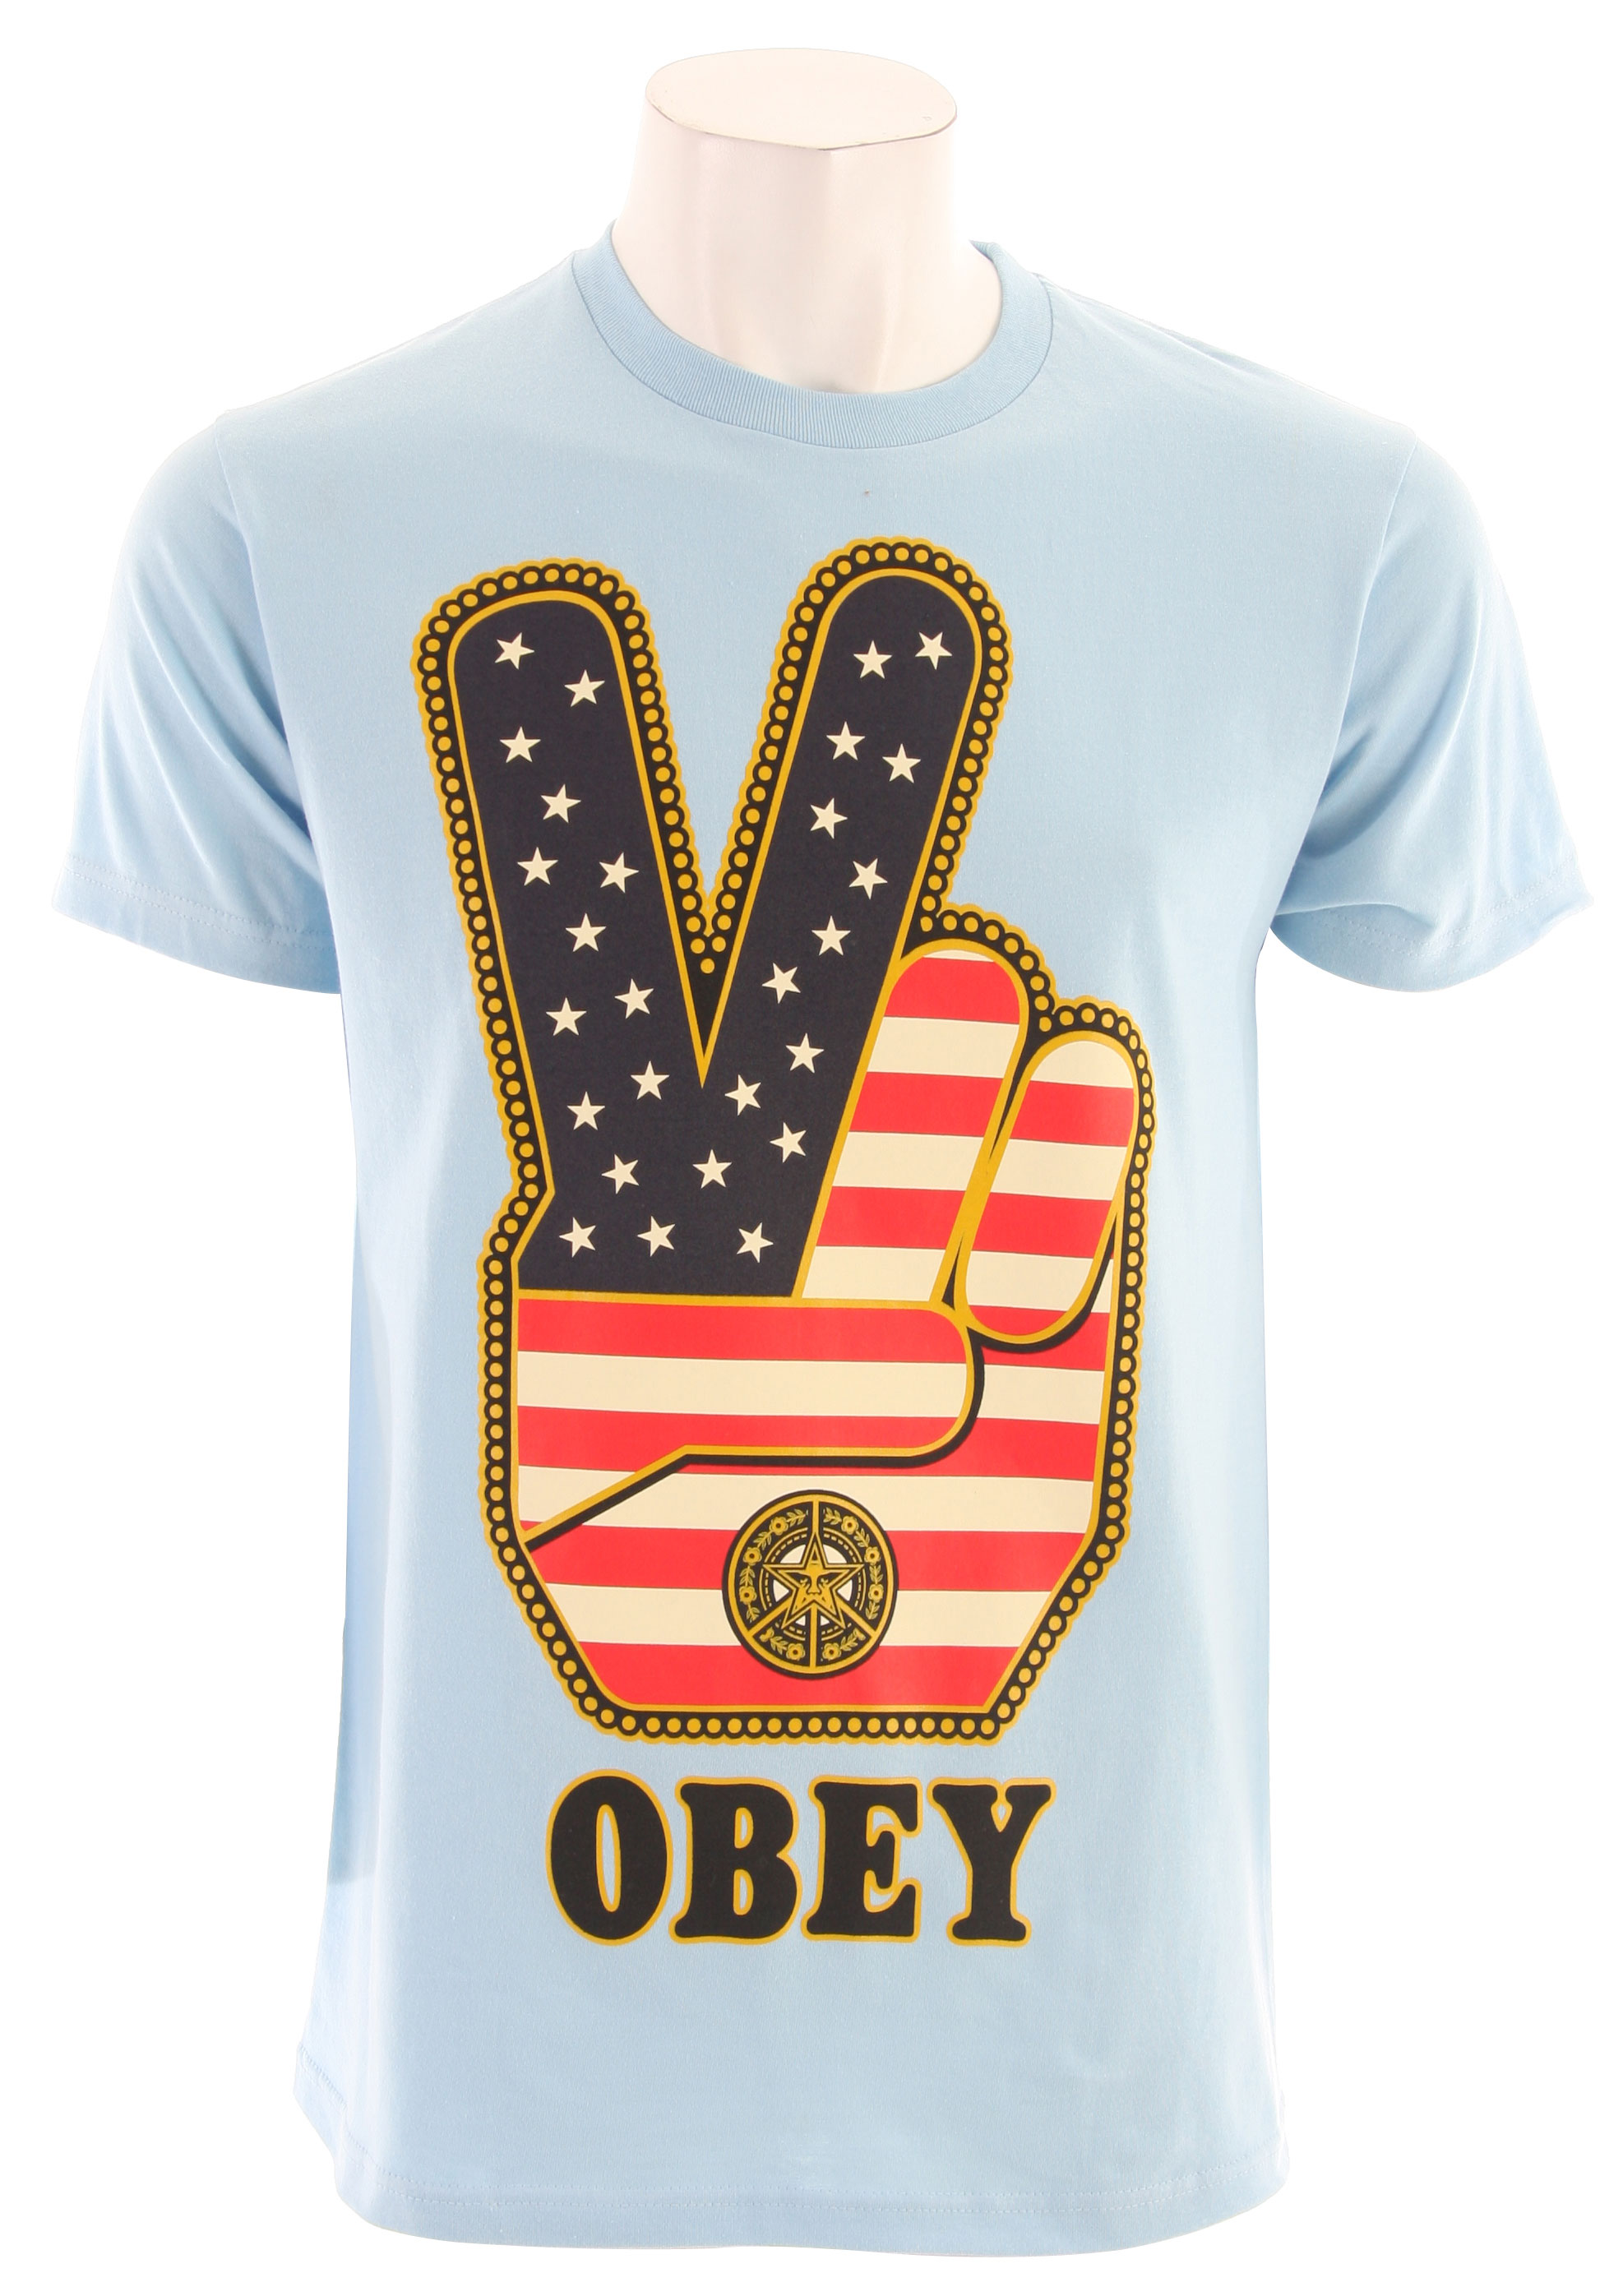 Key Features of The Obey Peace Fingers USA T-Shirt: Regular Fit Crew Neck Short Sleeve Body: 50% Polyester/25% Cotton/25% Rayon Sleeves: 100% Cotton Tri-blend raglan with color blocked, 3/4 sleeves Custom screenprint - $20.95